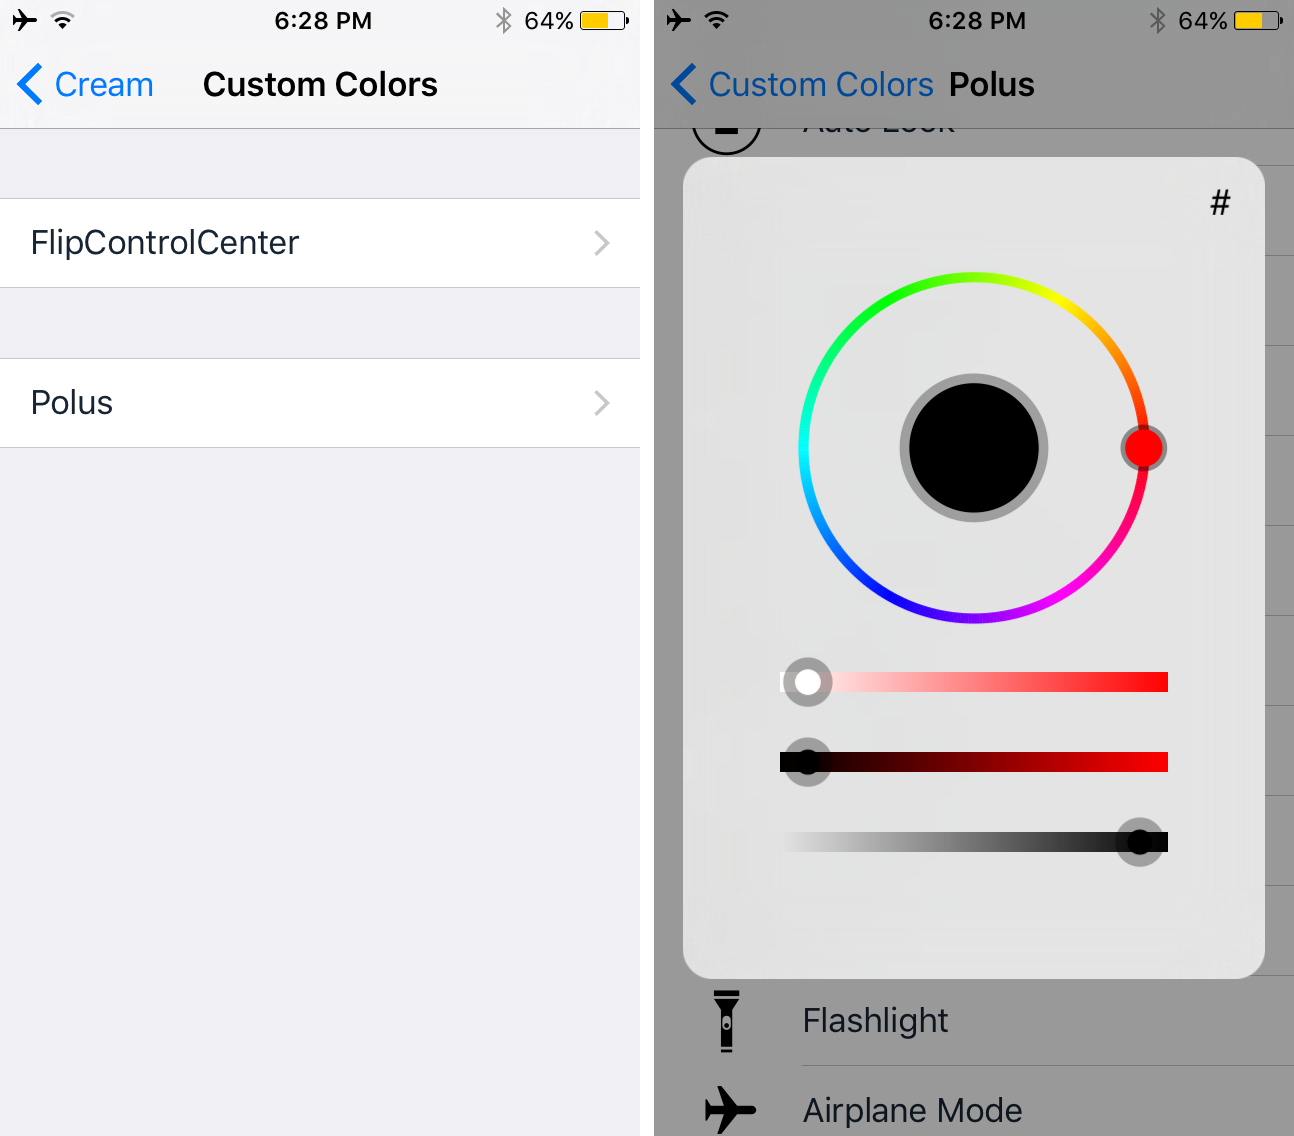 'Cream' gives your iPhone watchOS-like colored Control Center toggles